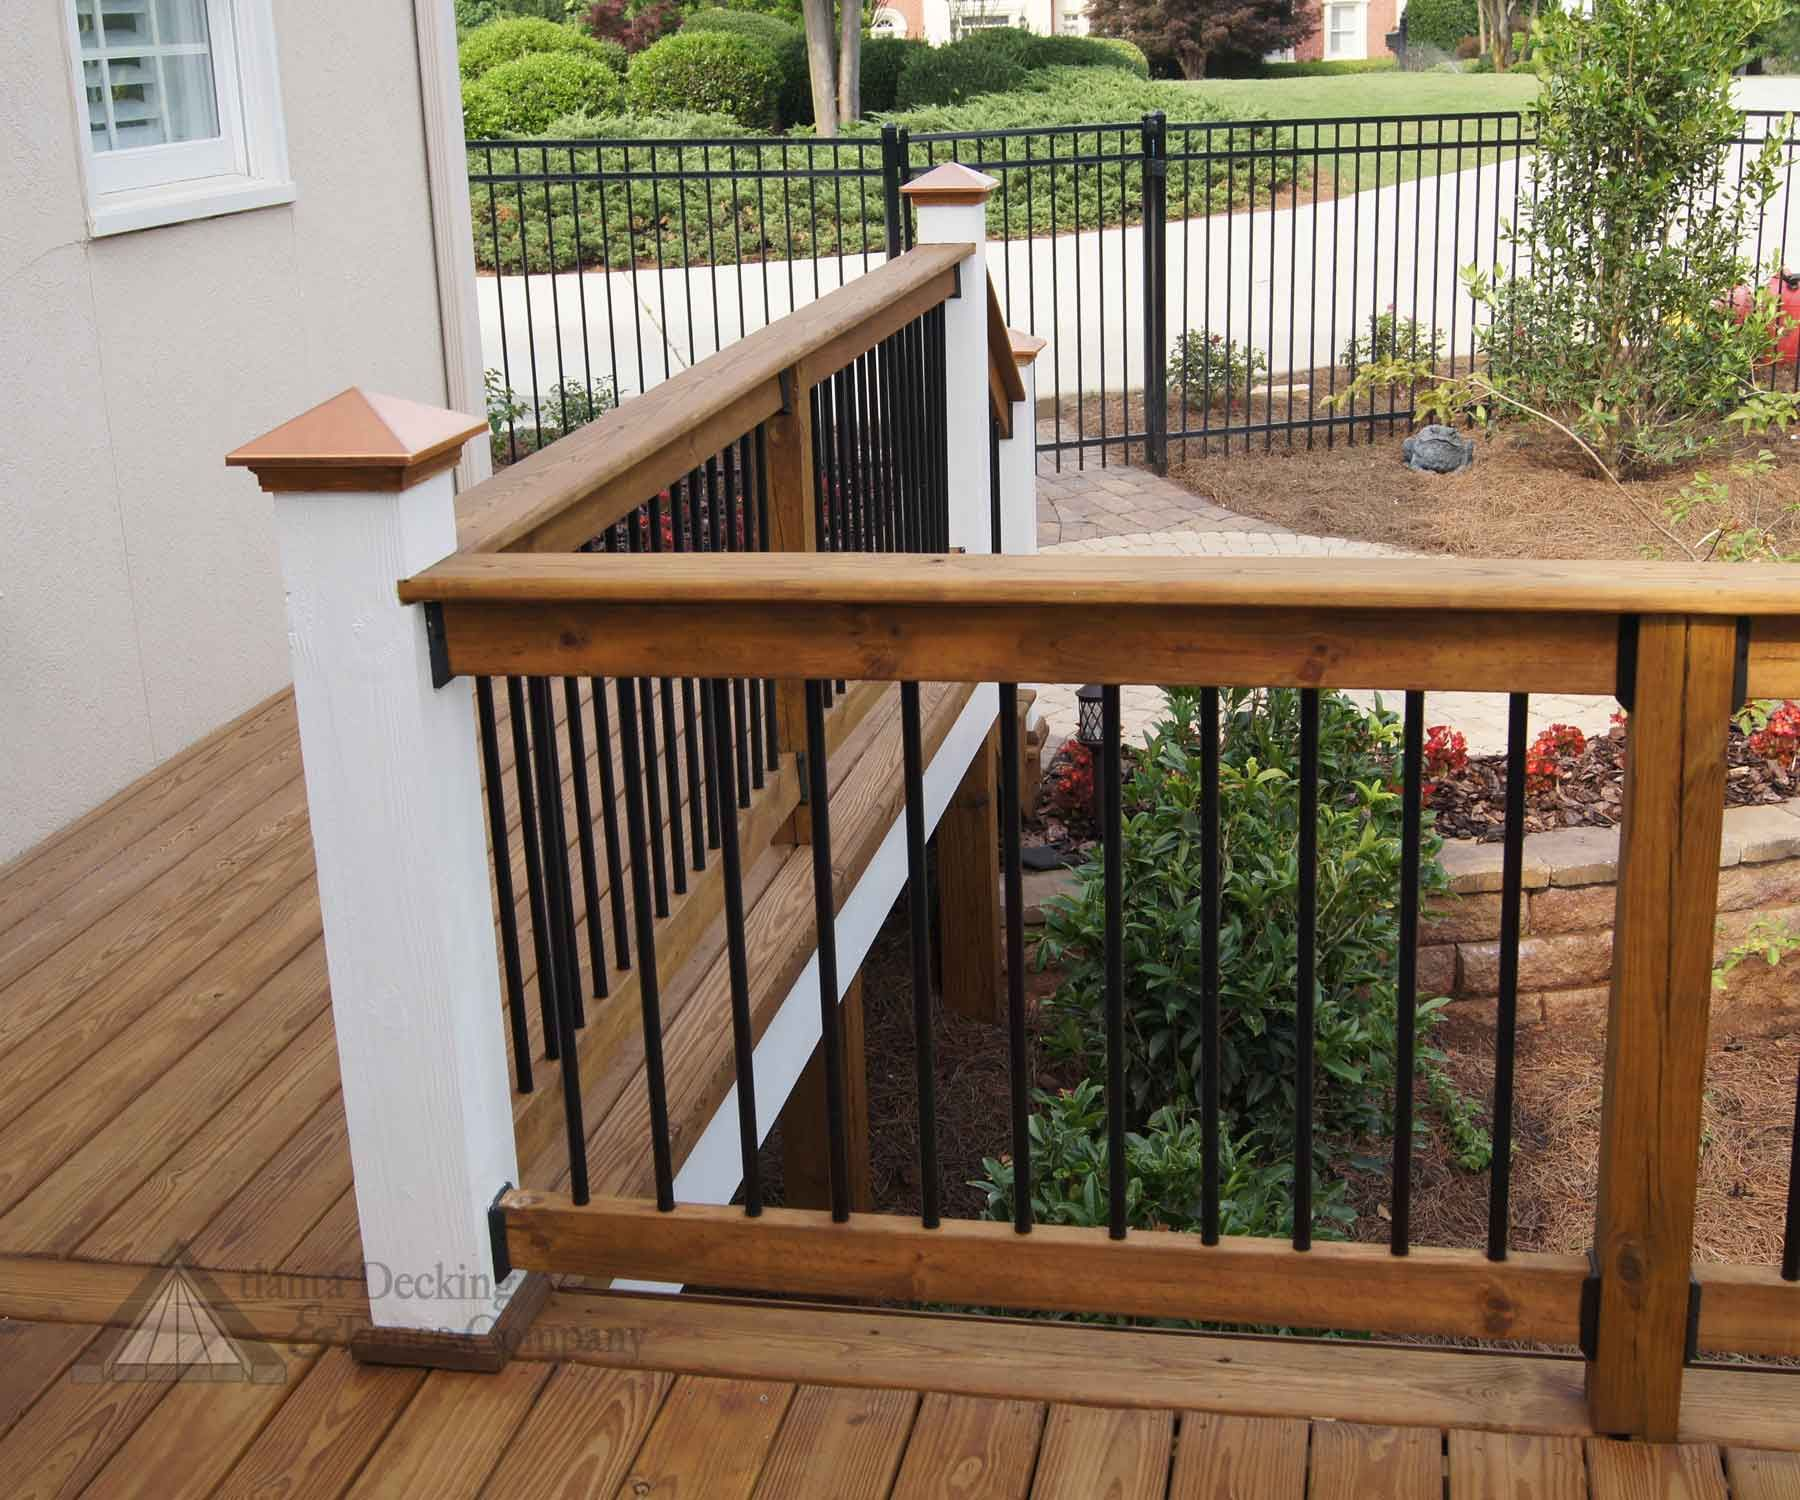 Modern handrail outdoor wallpaper deck railing ideas for Exterior deck design